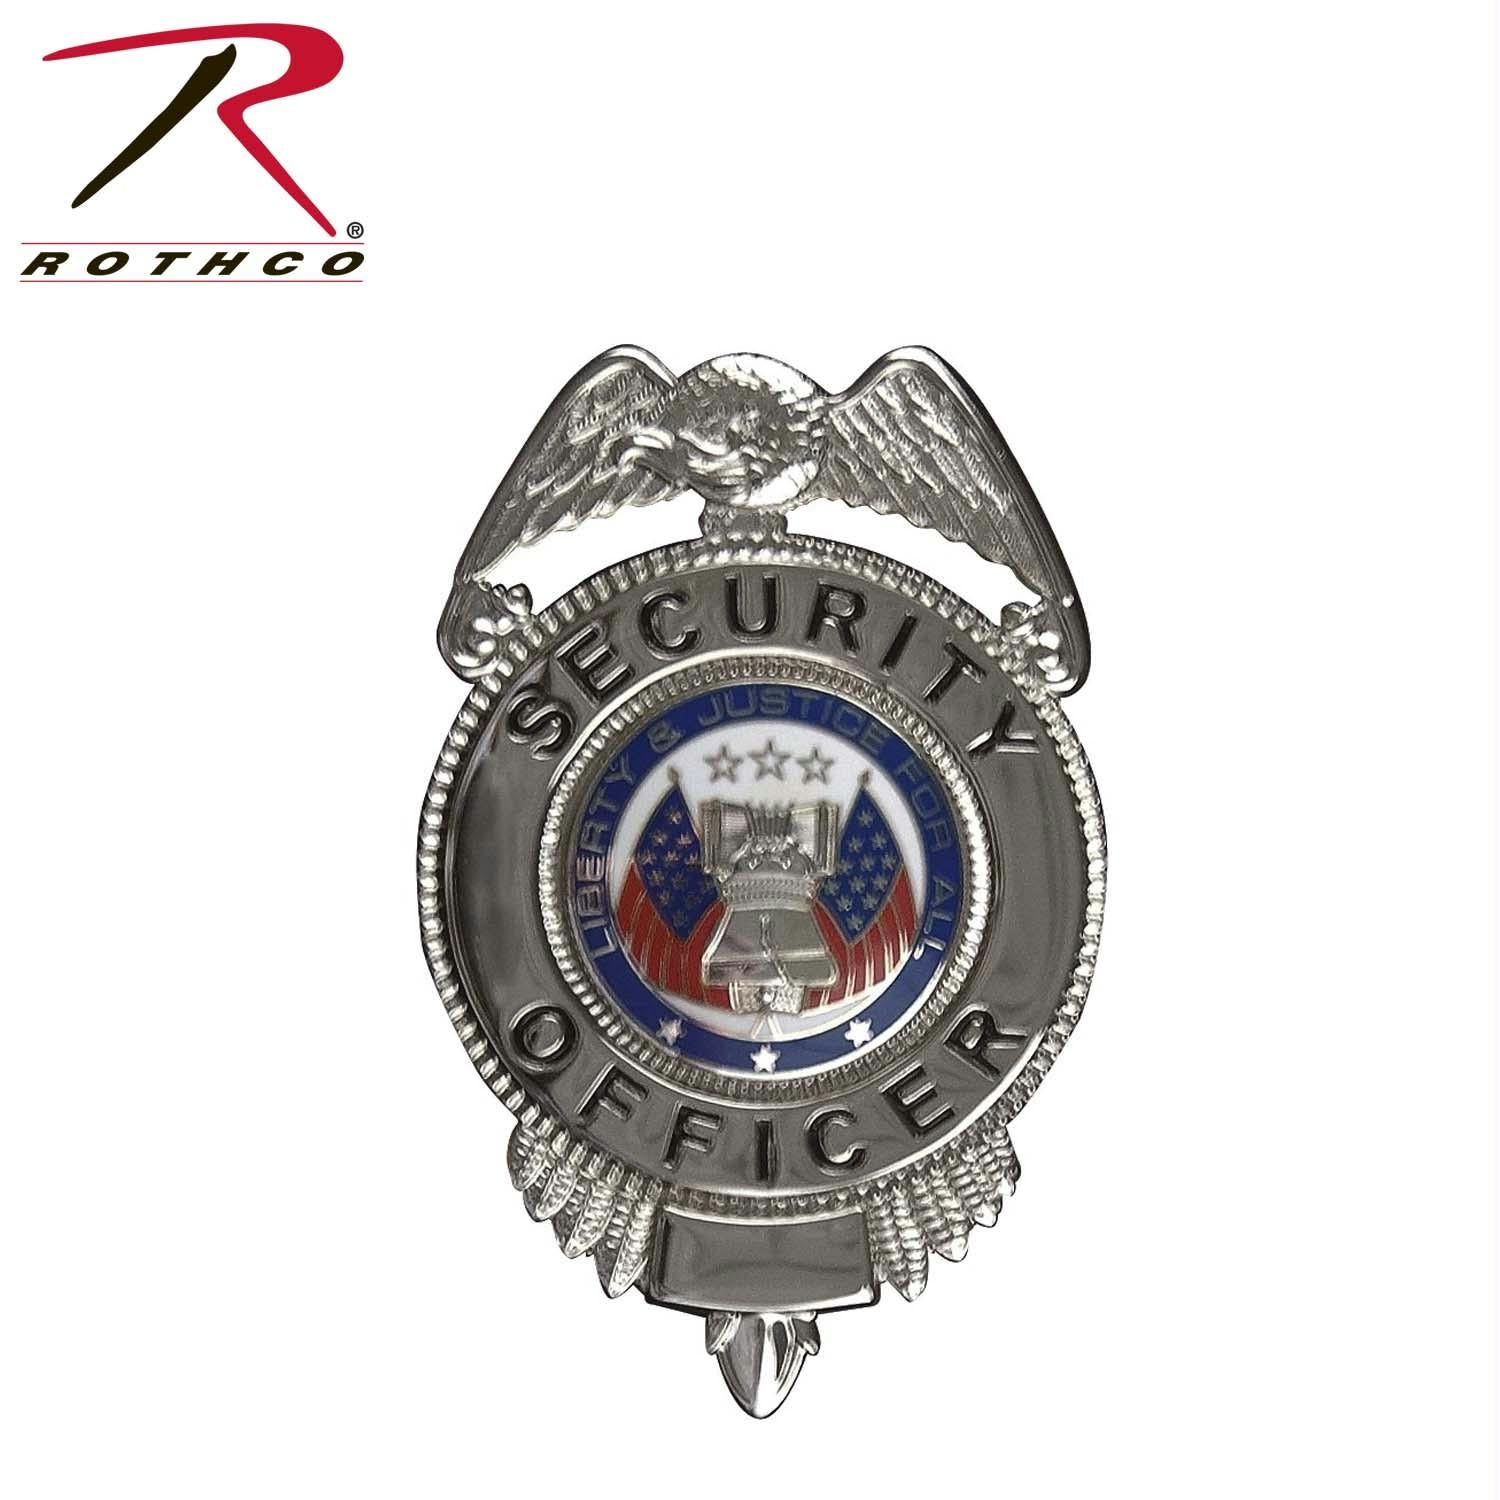 Rothco Security Officer Badge w/ Flags - Silver